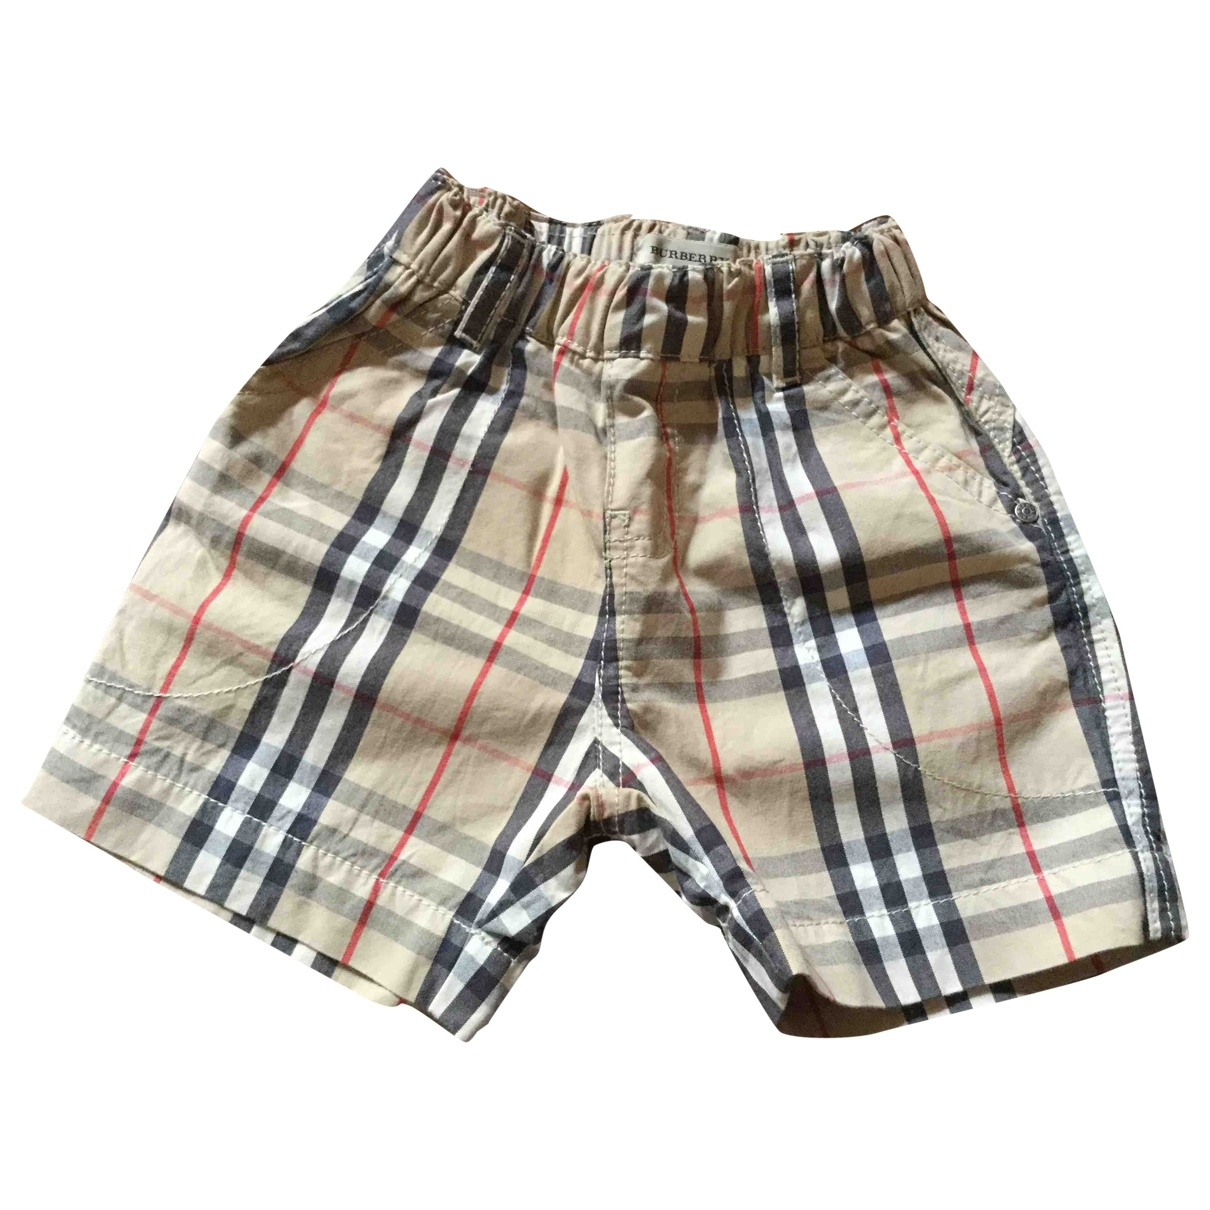 Burberry \N Beige Cotton Shorts for Kids 9 months - up to 71cm FR